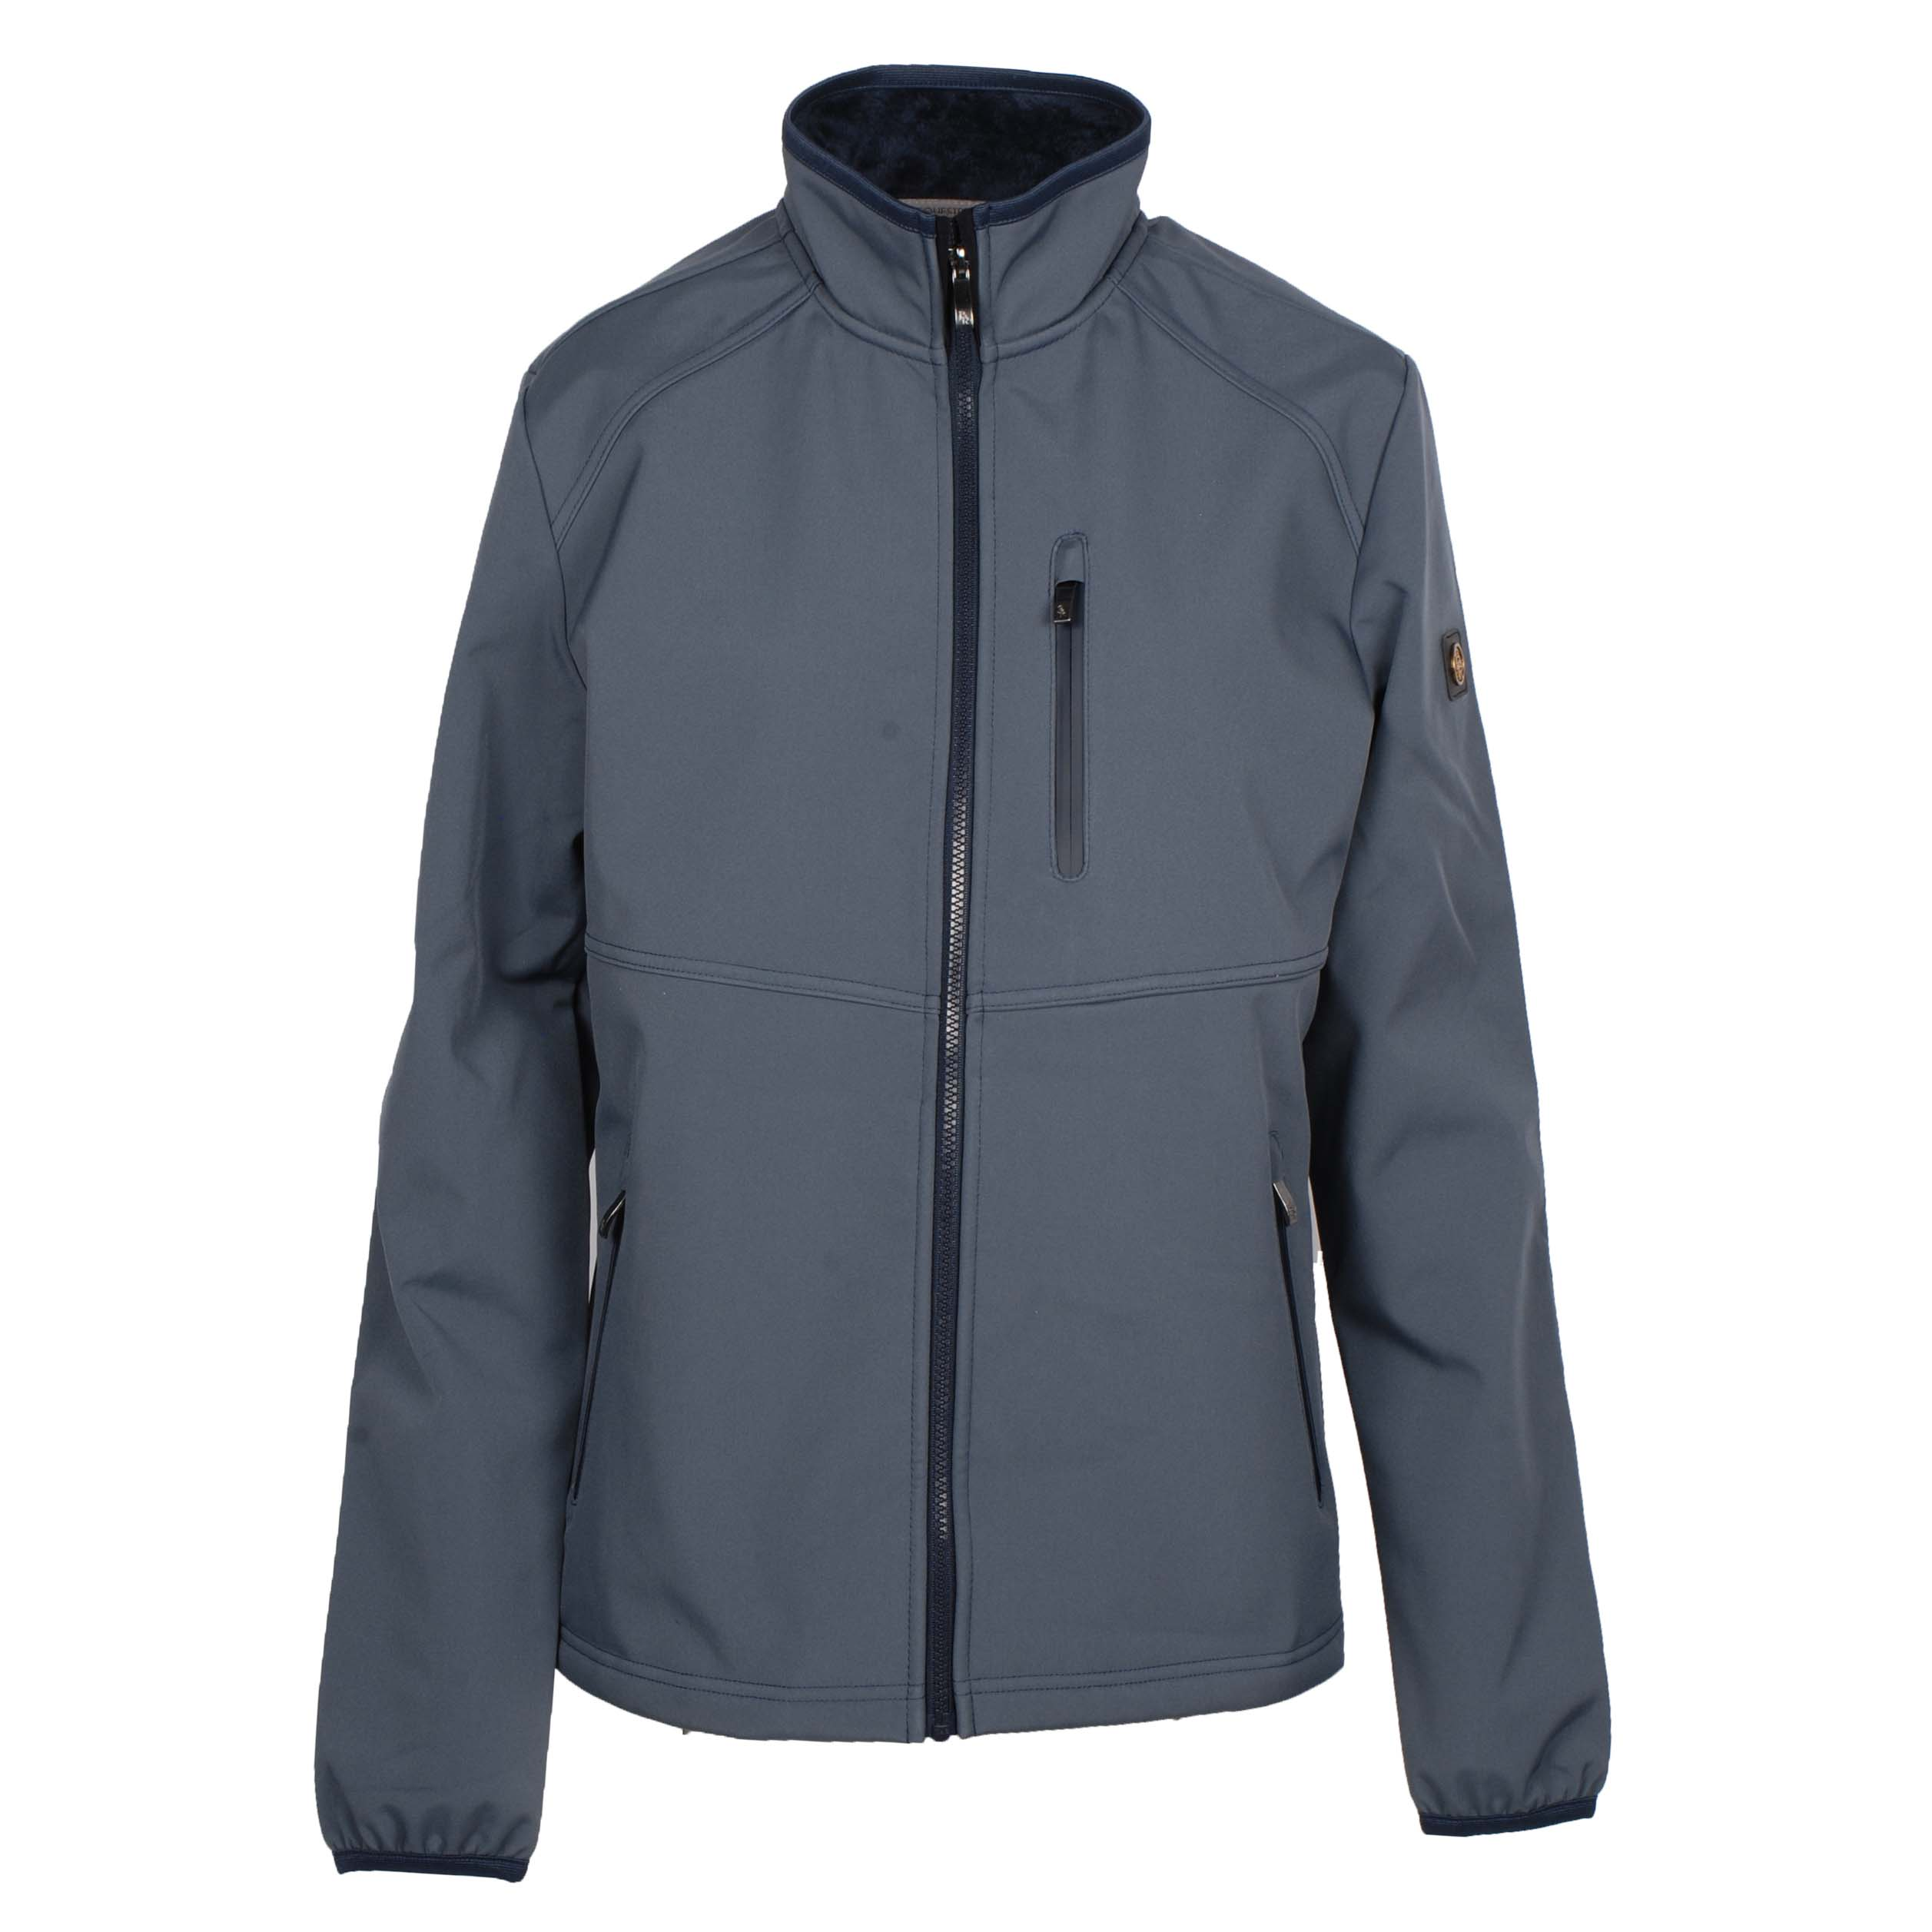 BR Pearson heren softshell blauw maat:s